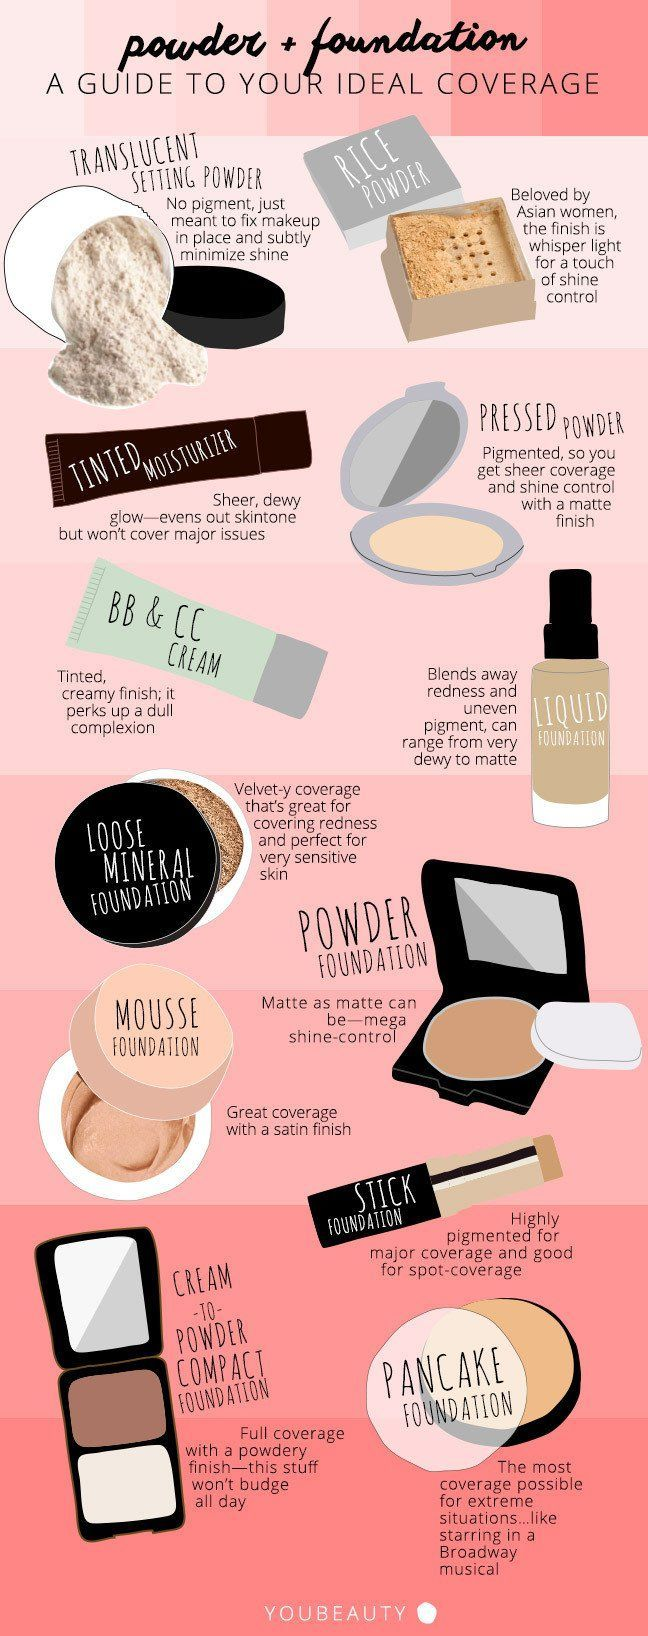 Powder And Foundation Application | A Guide To Your Ideal Coverage by Makeup Tutorials at http://makeuptutorials.com/powder-and-foundation-application-guide-to-ideal-coverage/